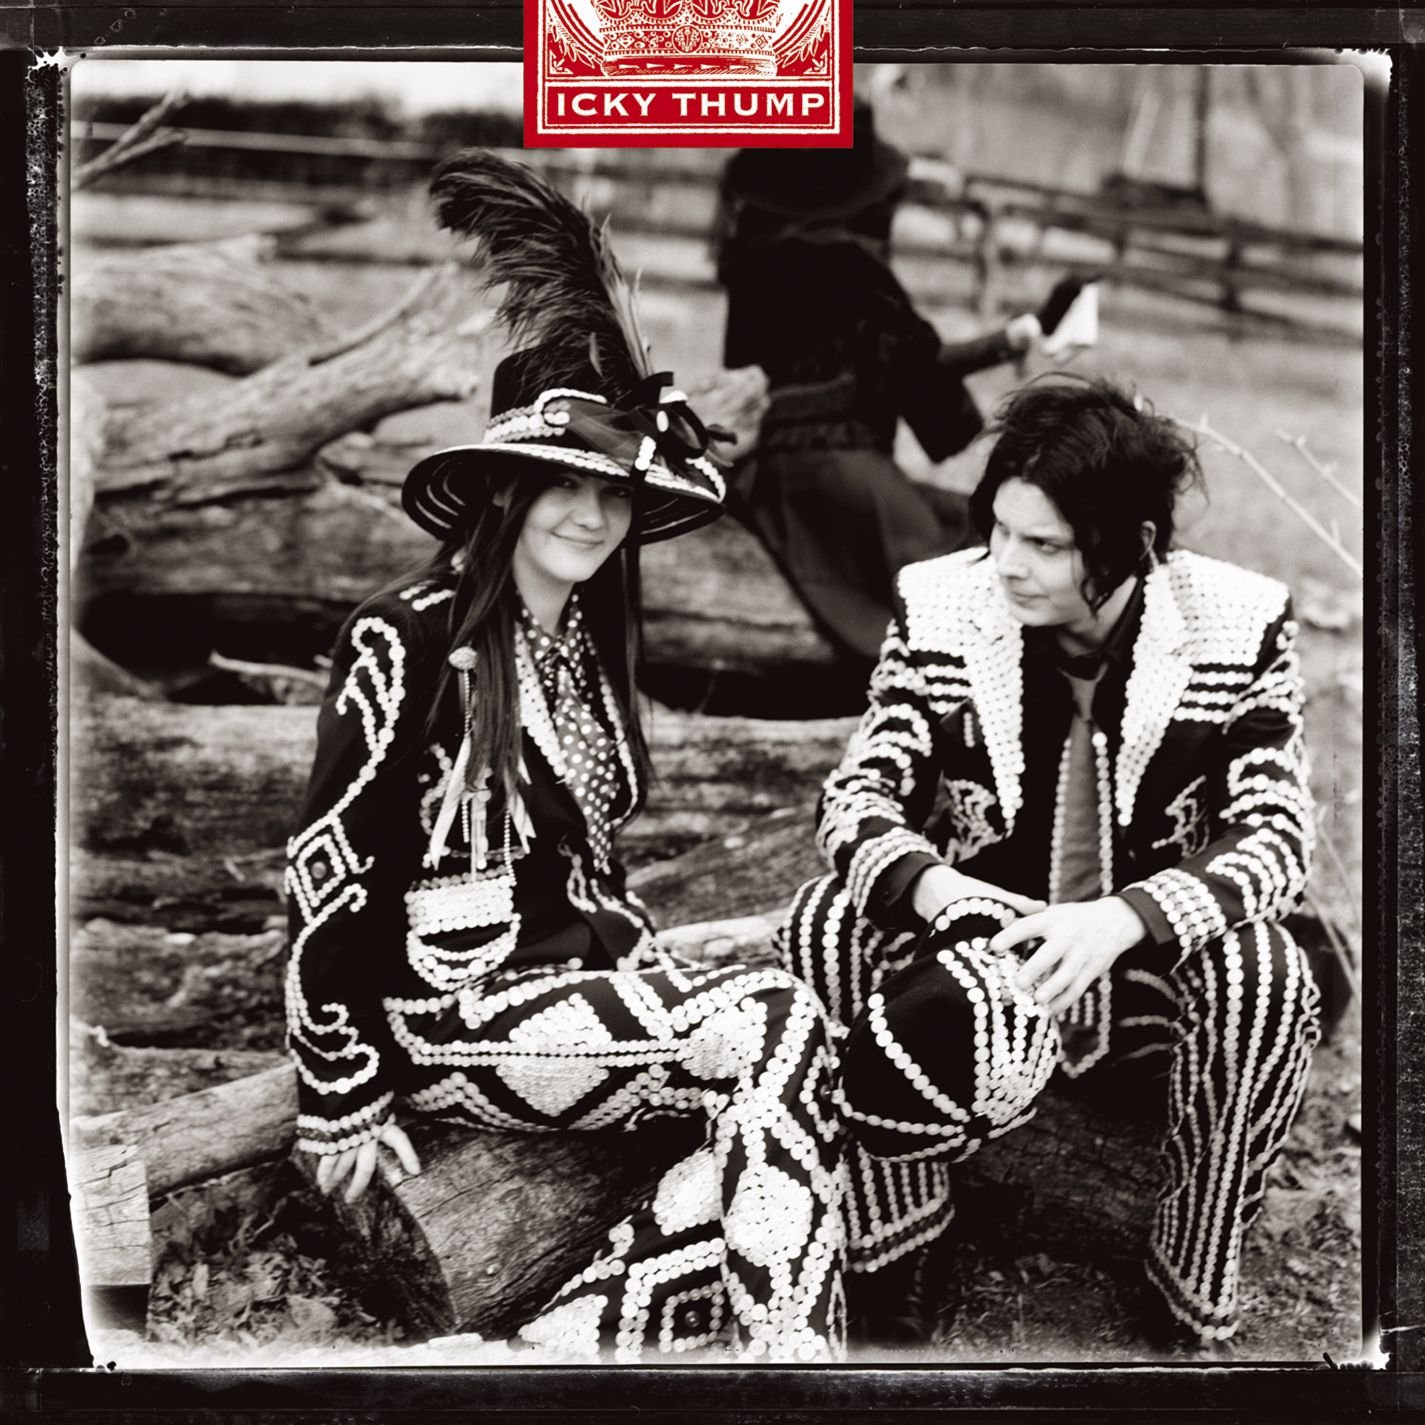 Icky Thump by Warner Bros